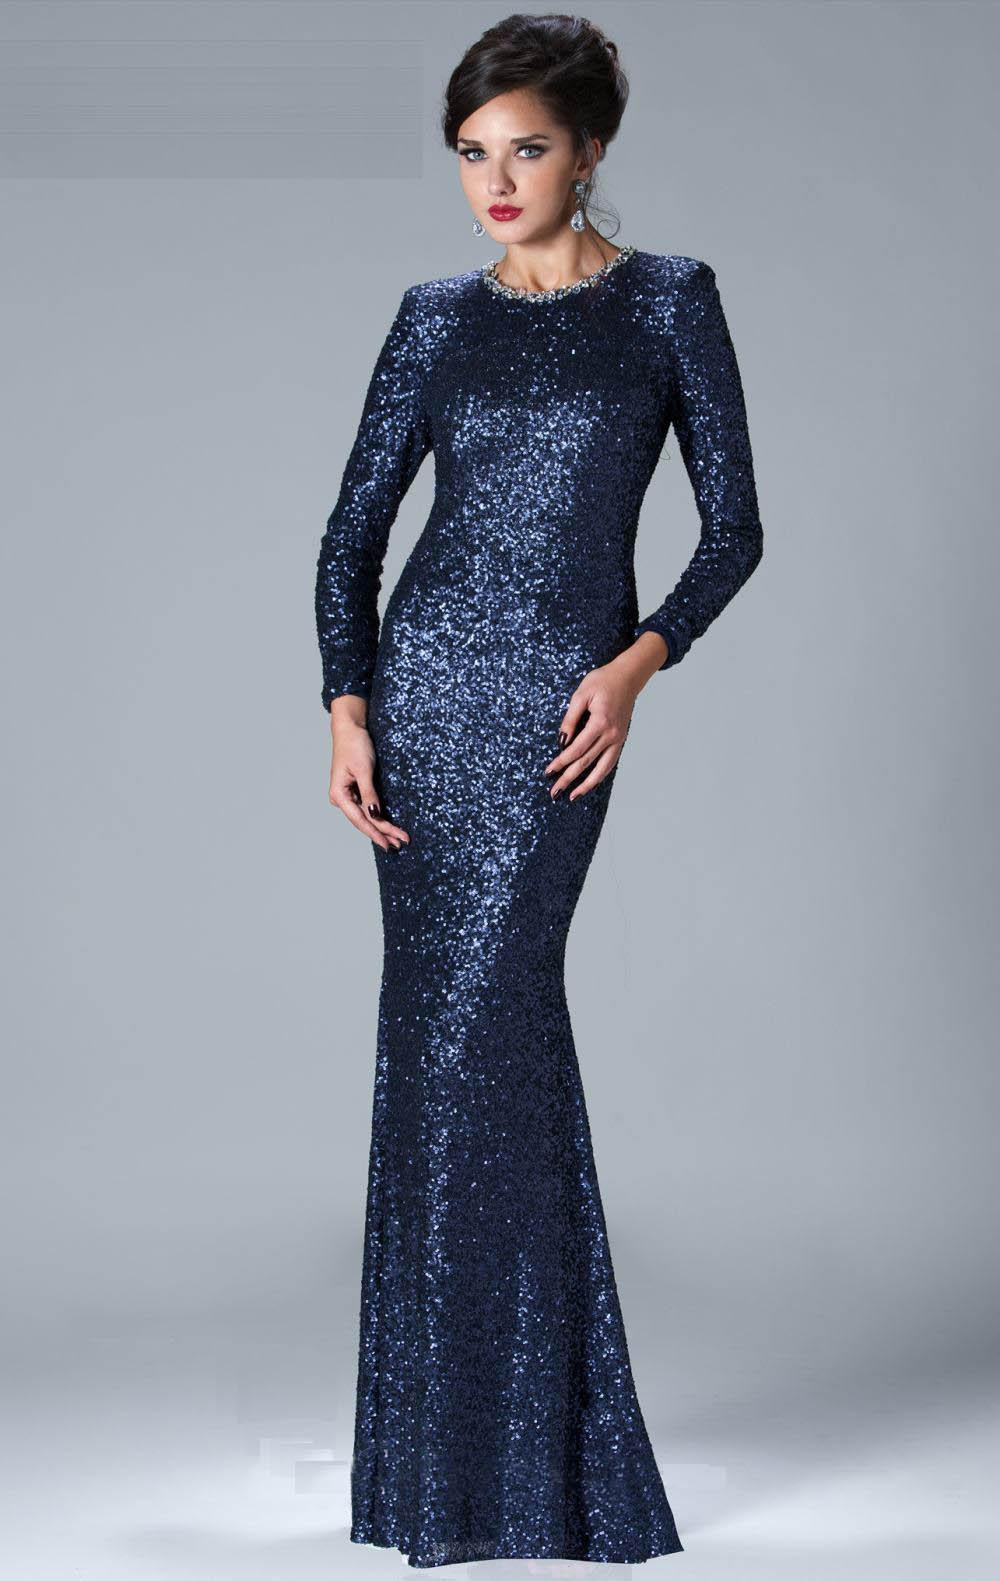 2013-new-sexy-long-sleeves-sequins-prom-dresses.jpg